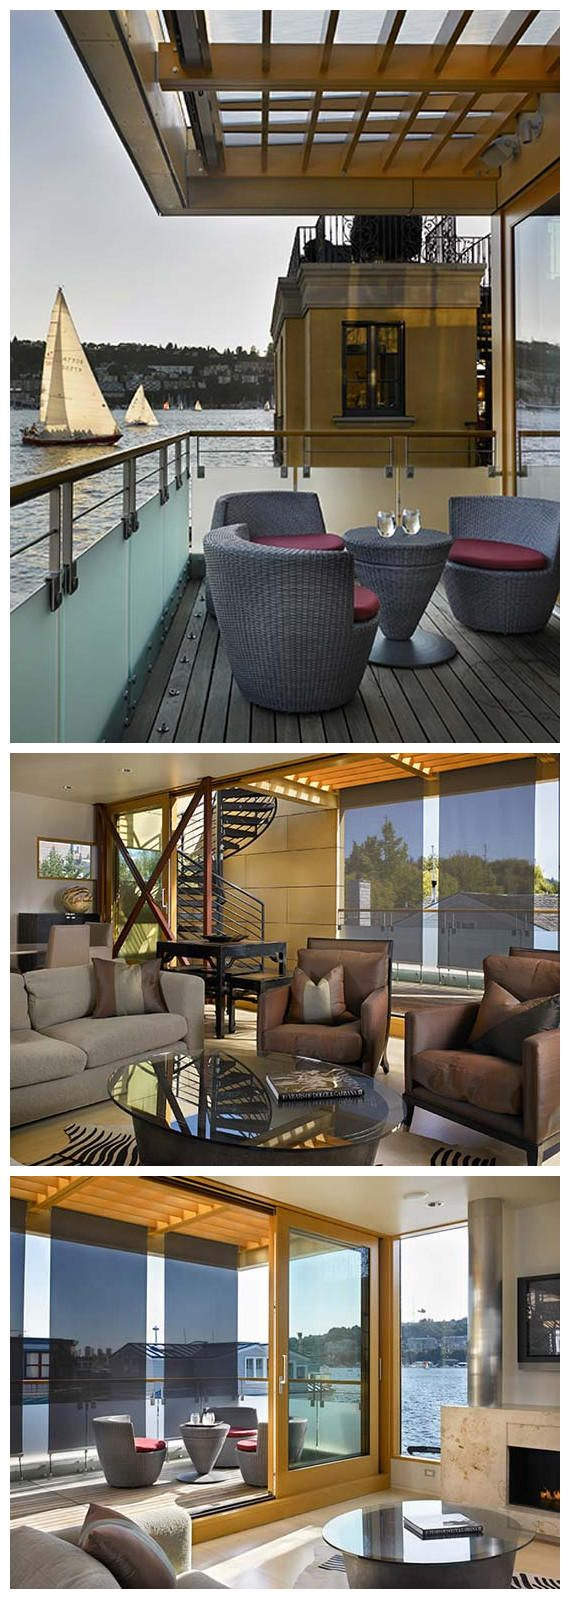 best design images on pinterest home ideas arquitetura and dreams